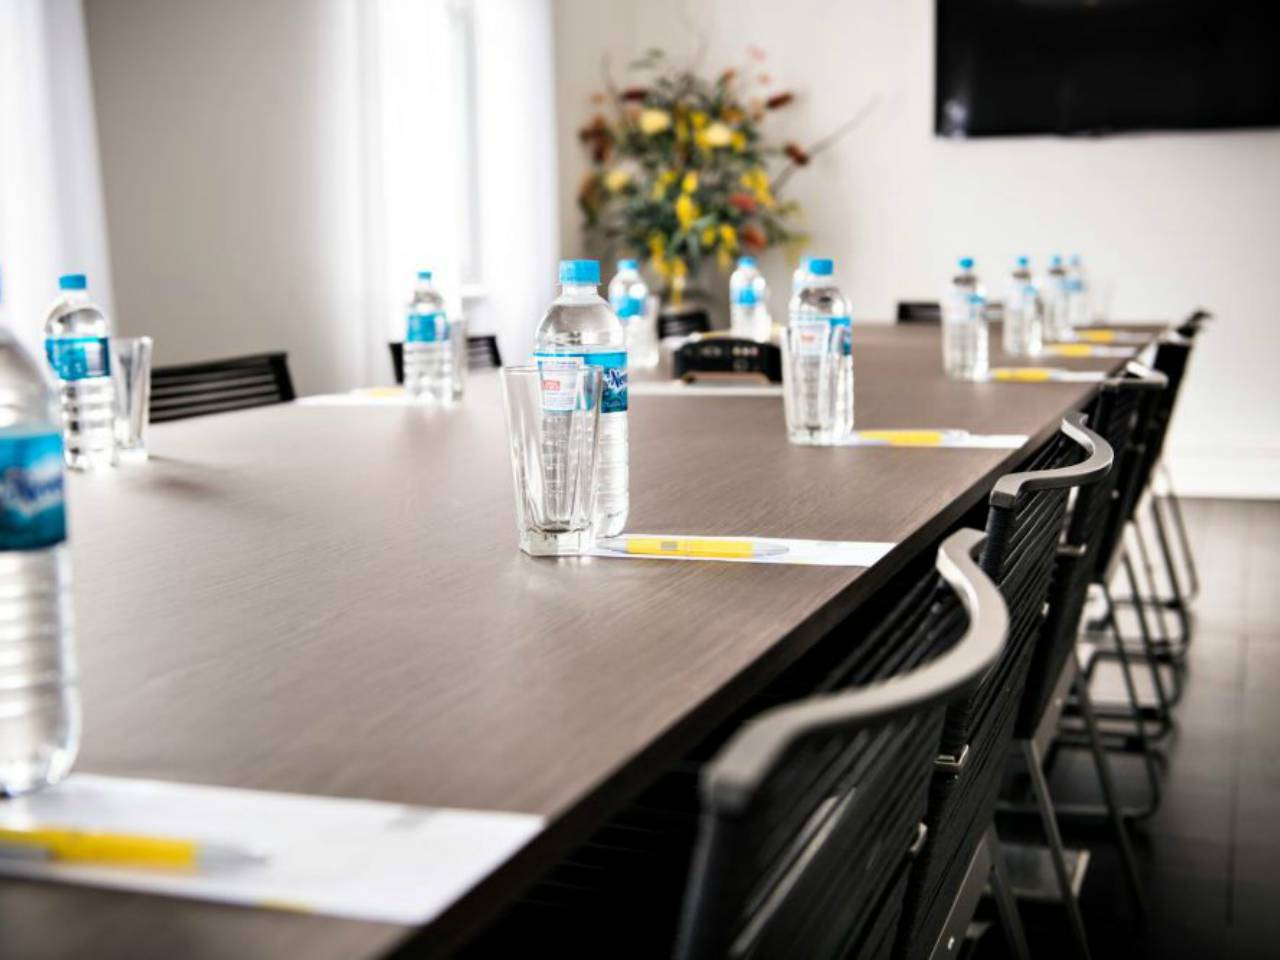 Meeting Table With Bottles Of Water, Ready For A Team Meeting.